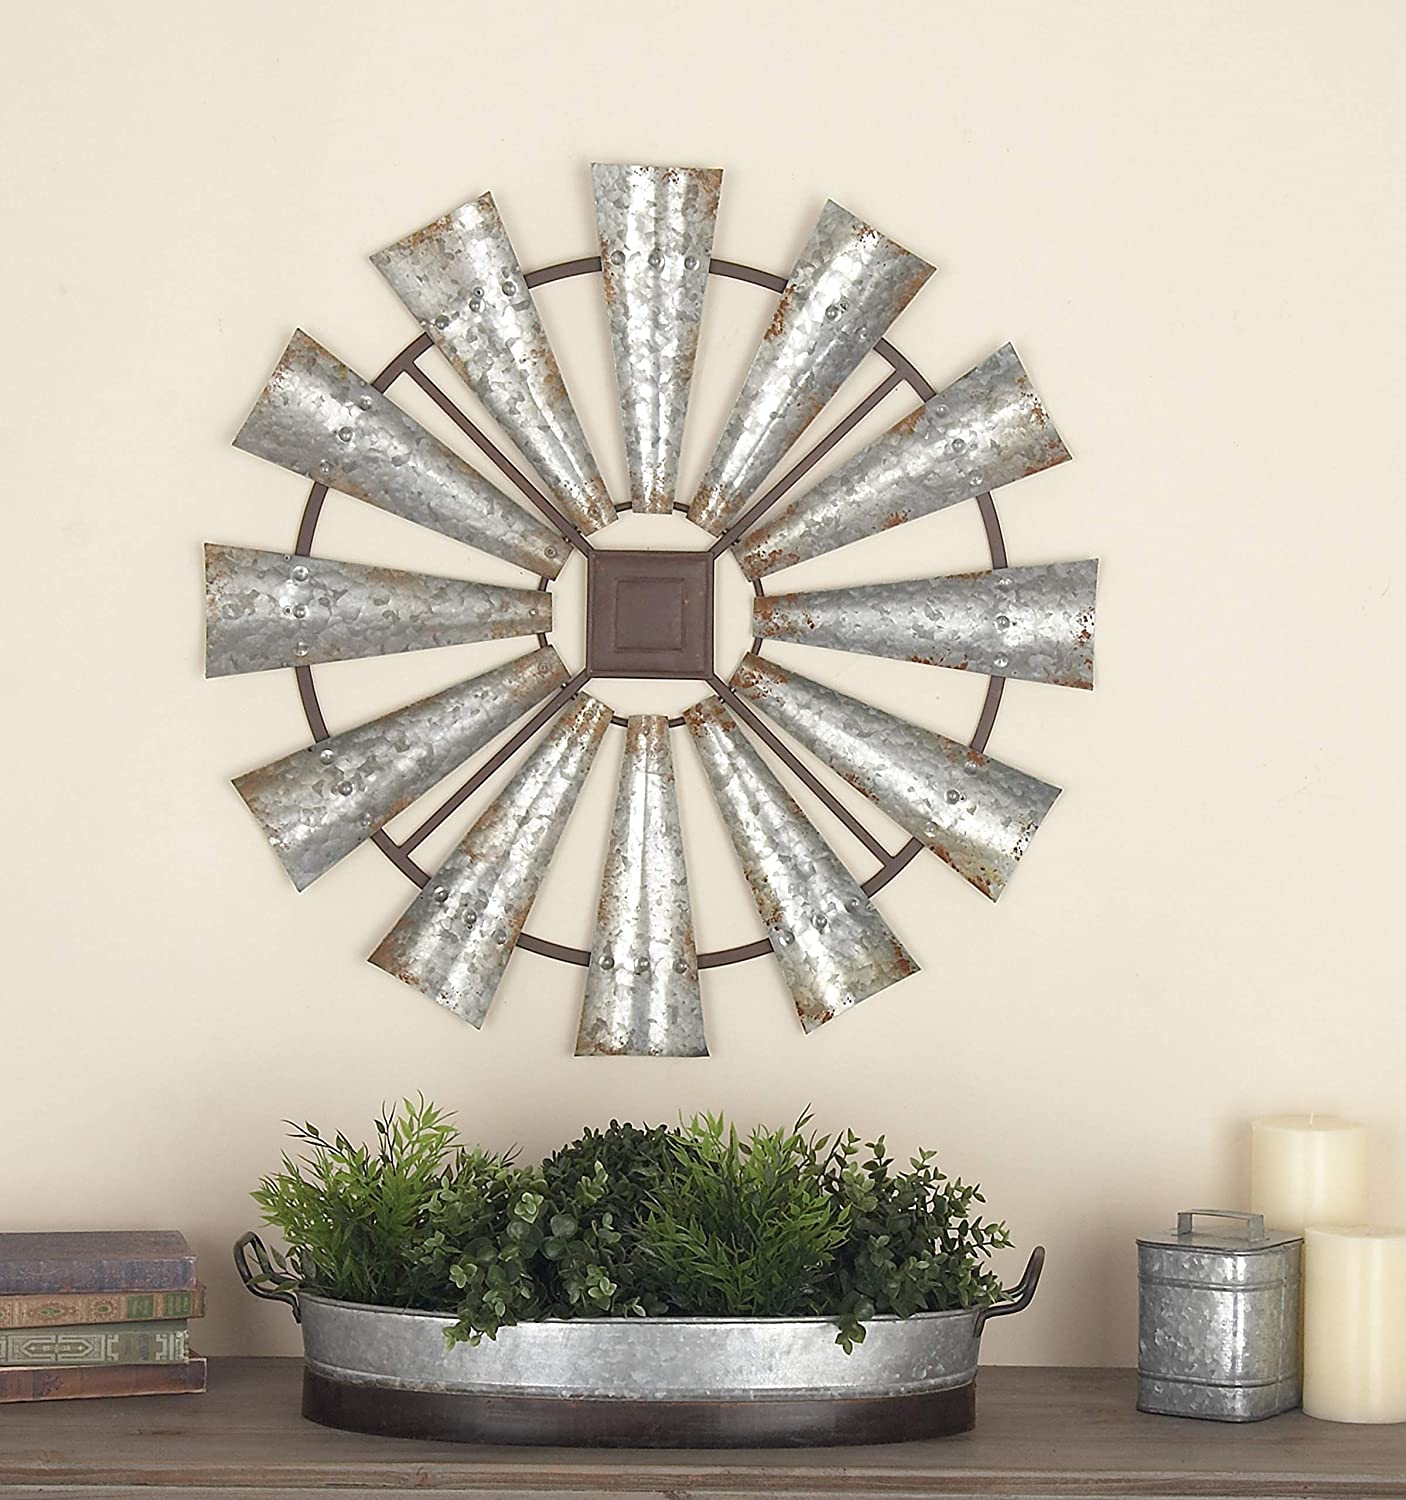 Deco 79 Indoor/Outdoor Large Brown & Silver Metal Windmill Fall Summer, Farmhouse Wall, Patio Decor, 30x1x30, Black/Gray